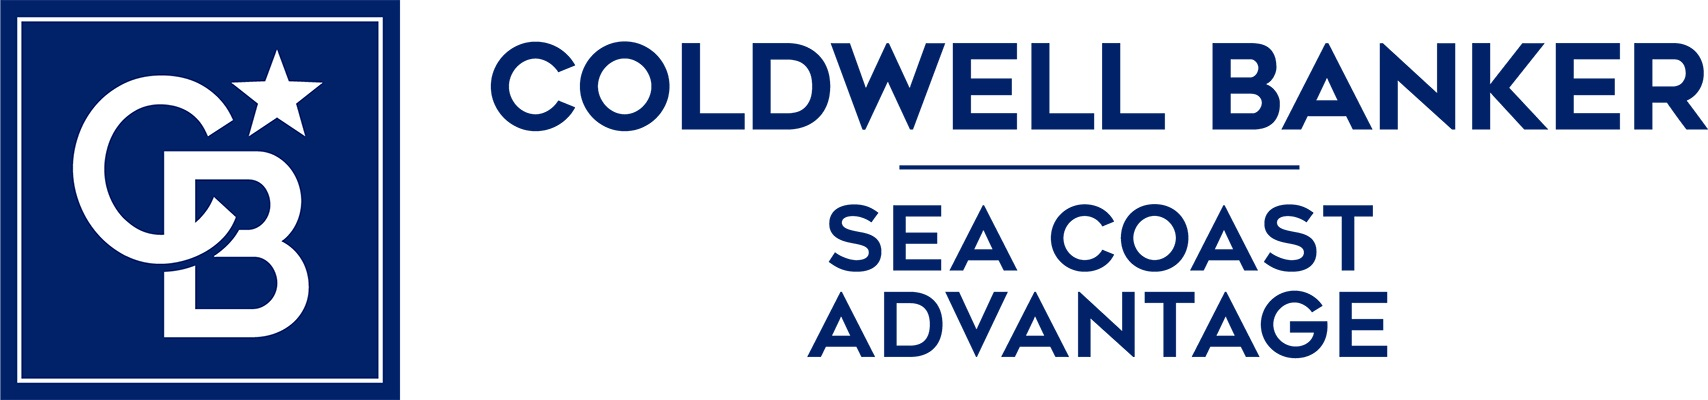 Ken Brandon - Coldwell Banker Sea Coast Advantage Realty Logo